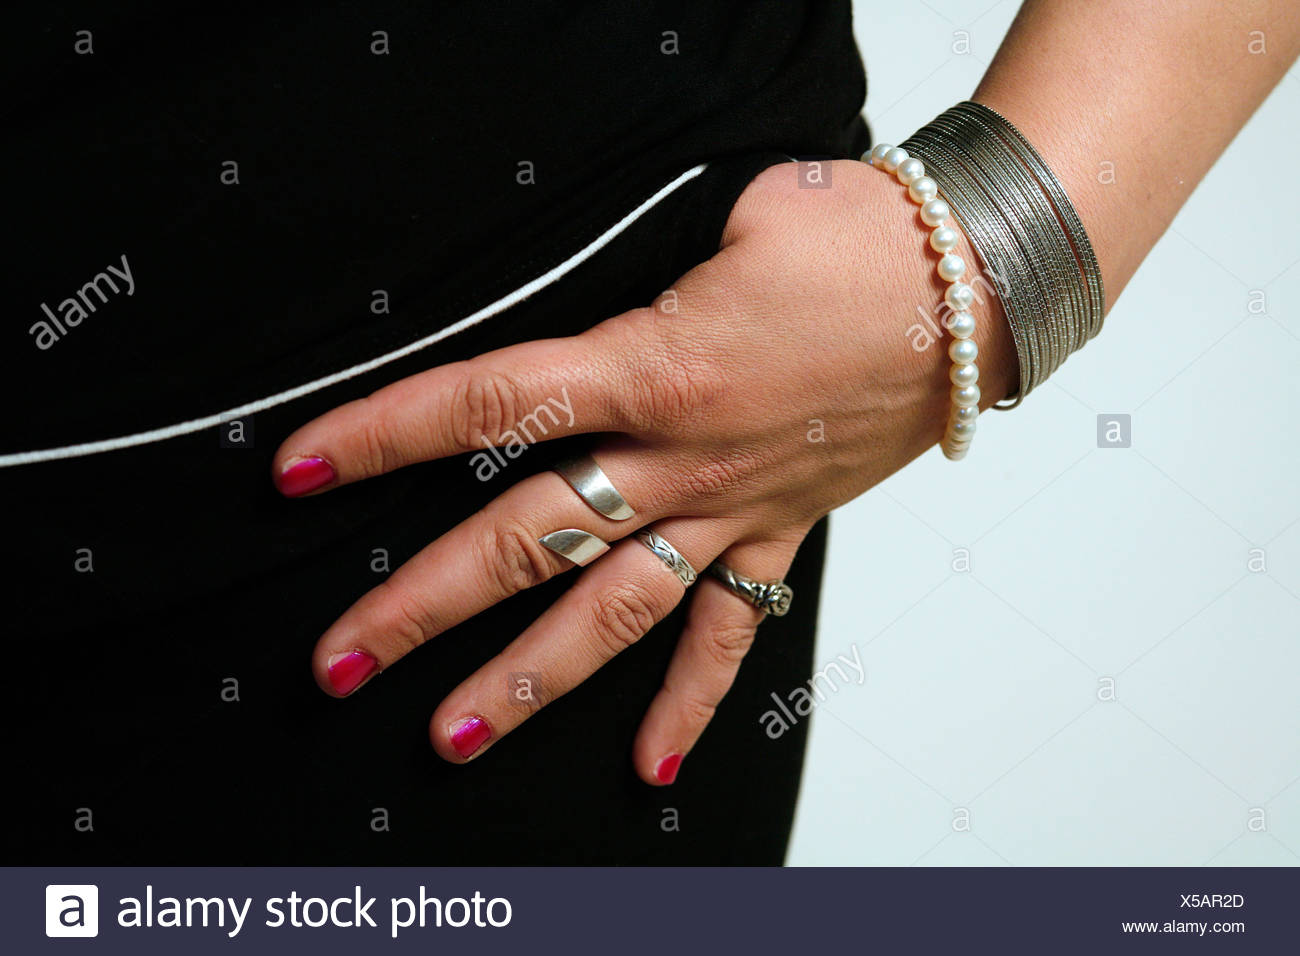 Hand with rings and bracelets - Stock Image